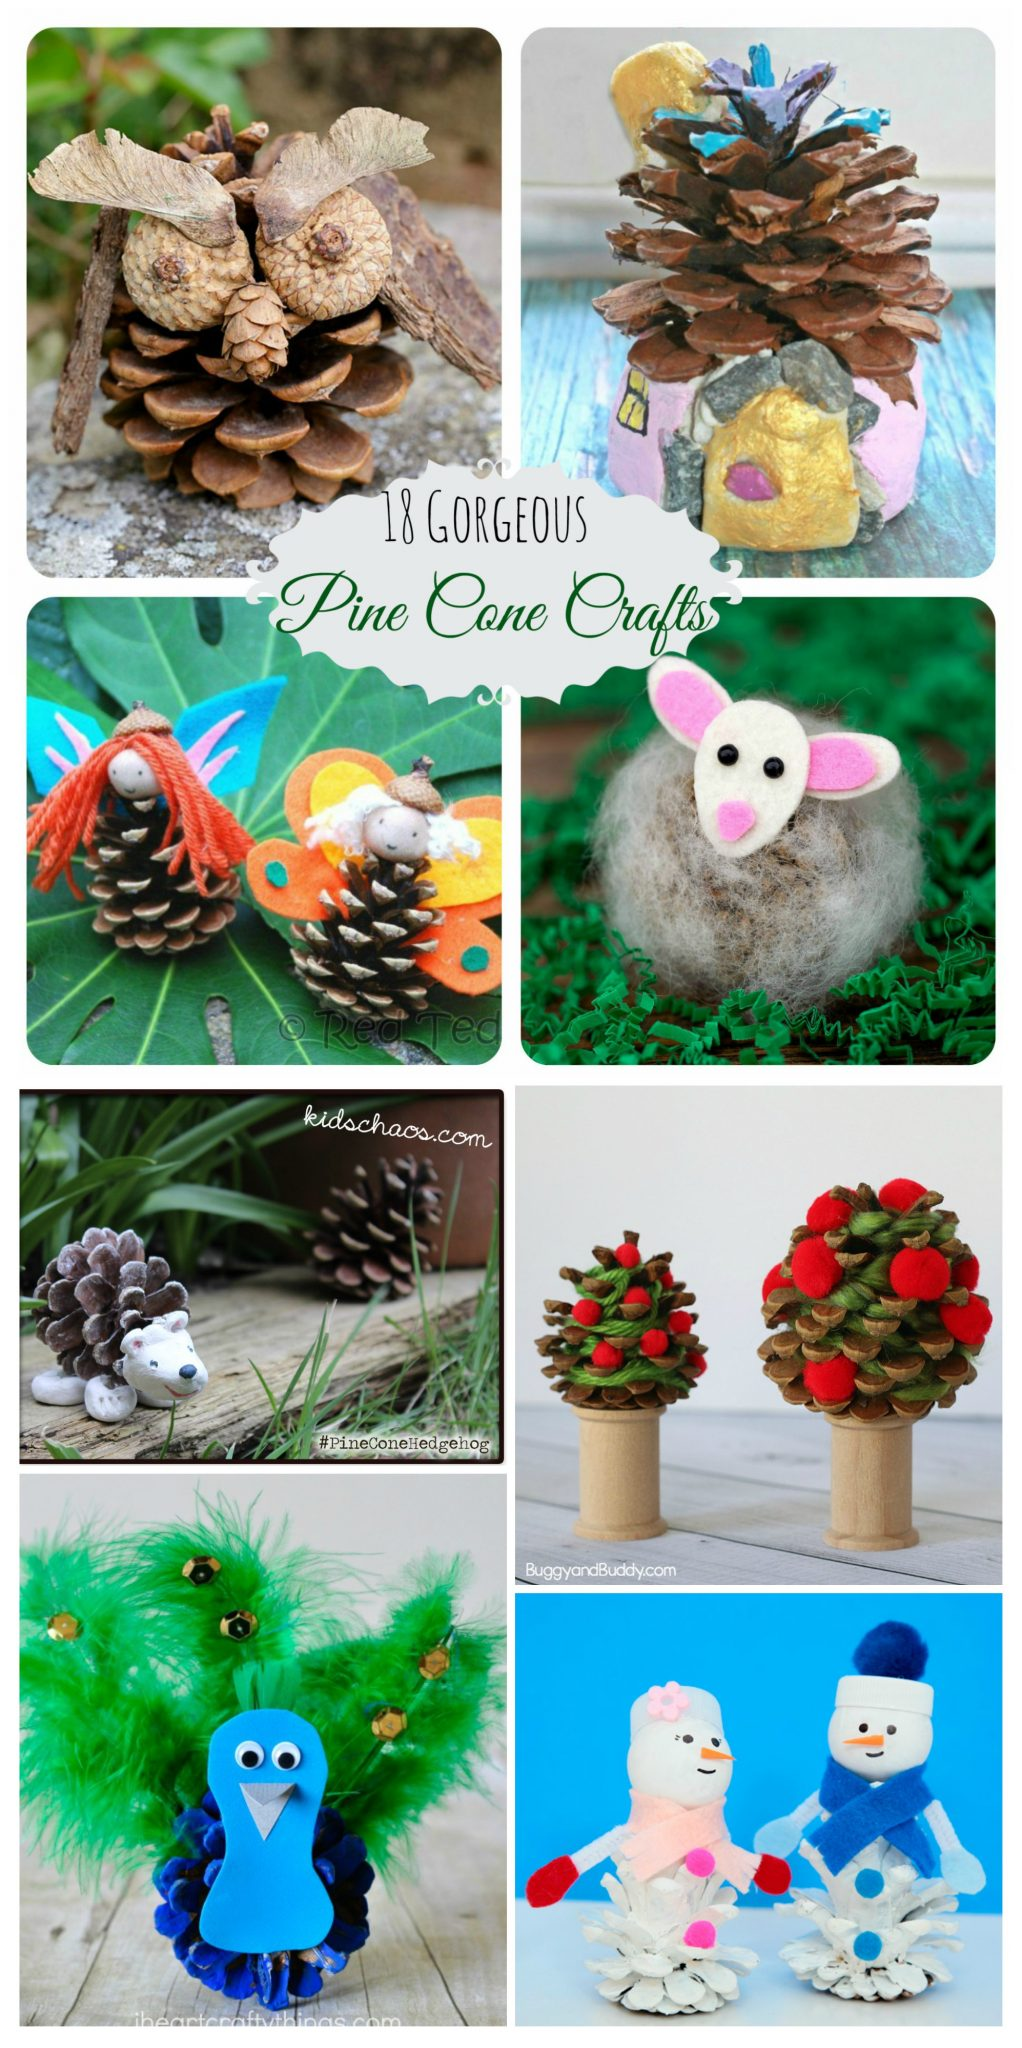 18 gorgeous pine cone crafts u2013 the pinterested parent